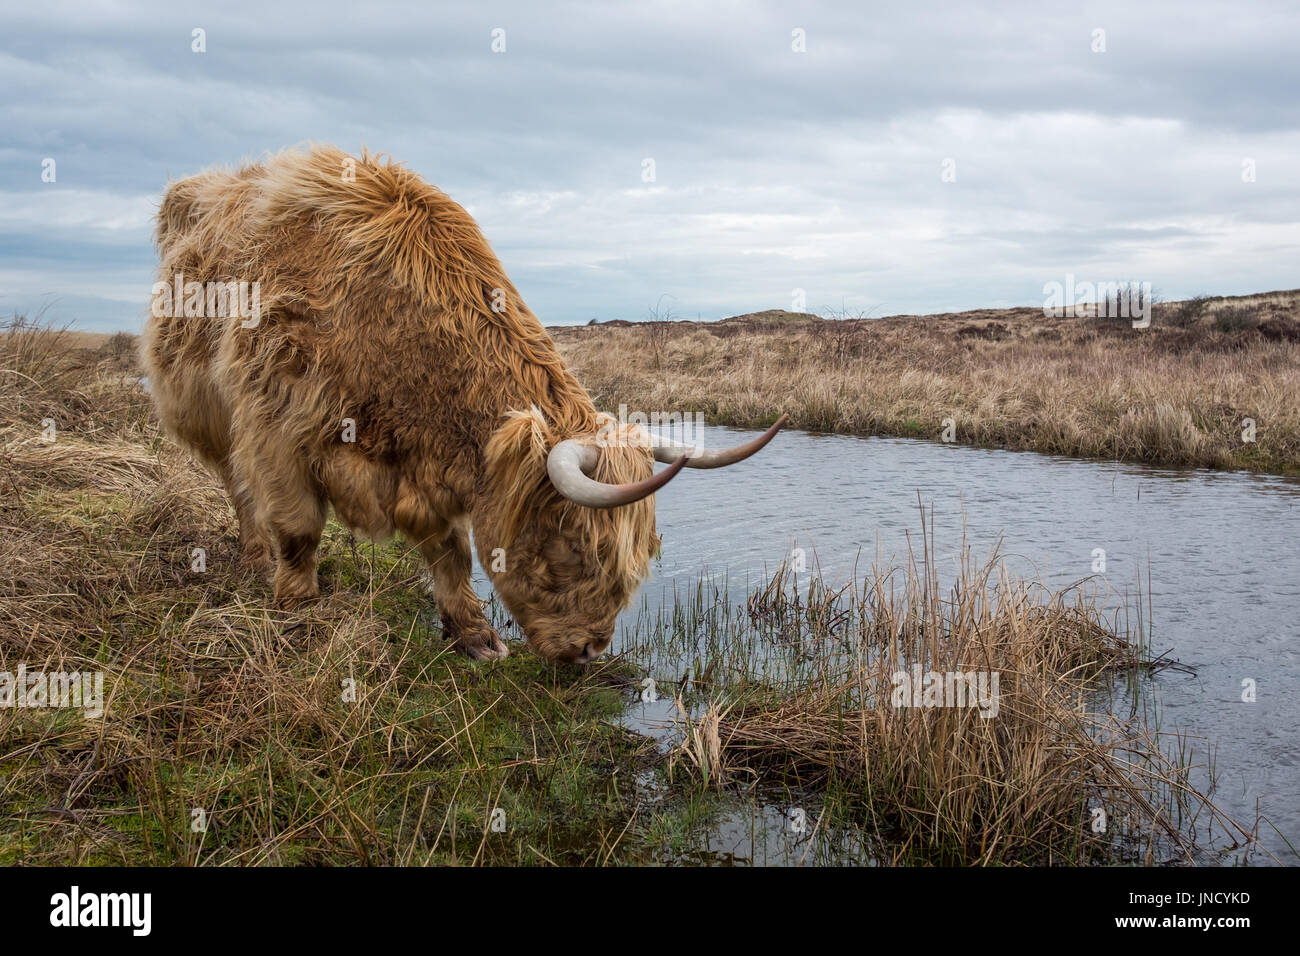 Scottish Highland cow in the Dunes of Texel, Tuesday 28 February 2017, Texel, The Netherlands. - Stock Image